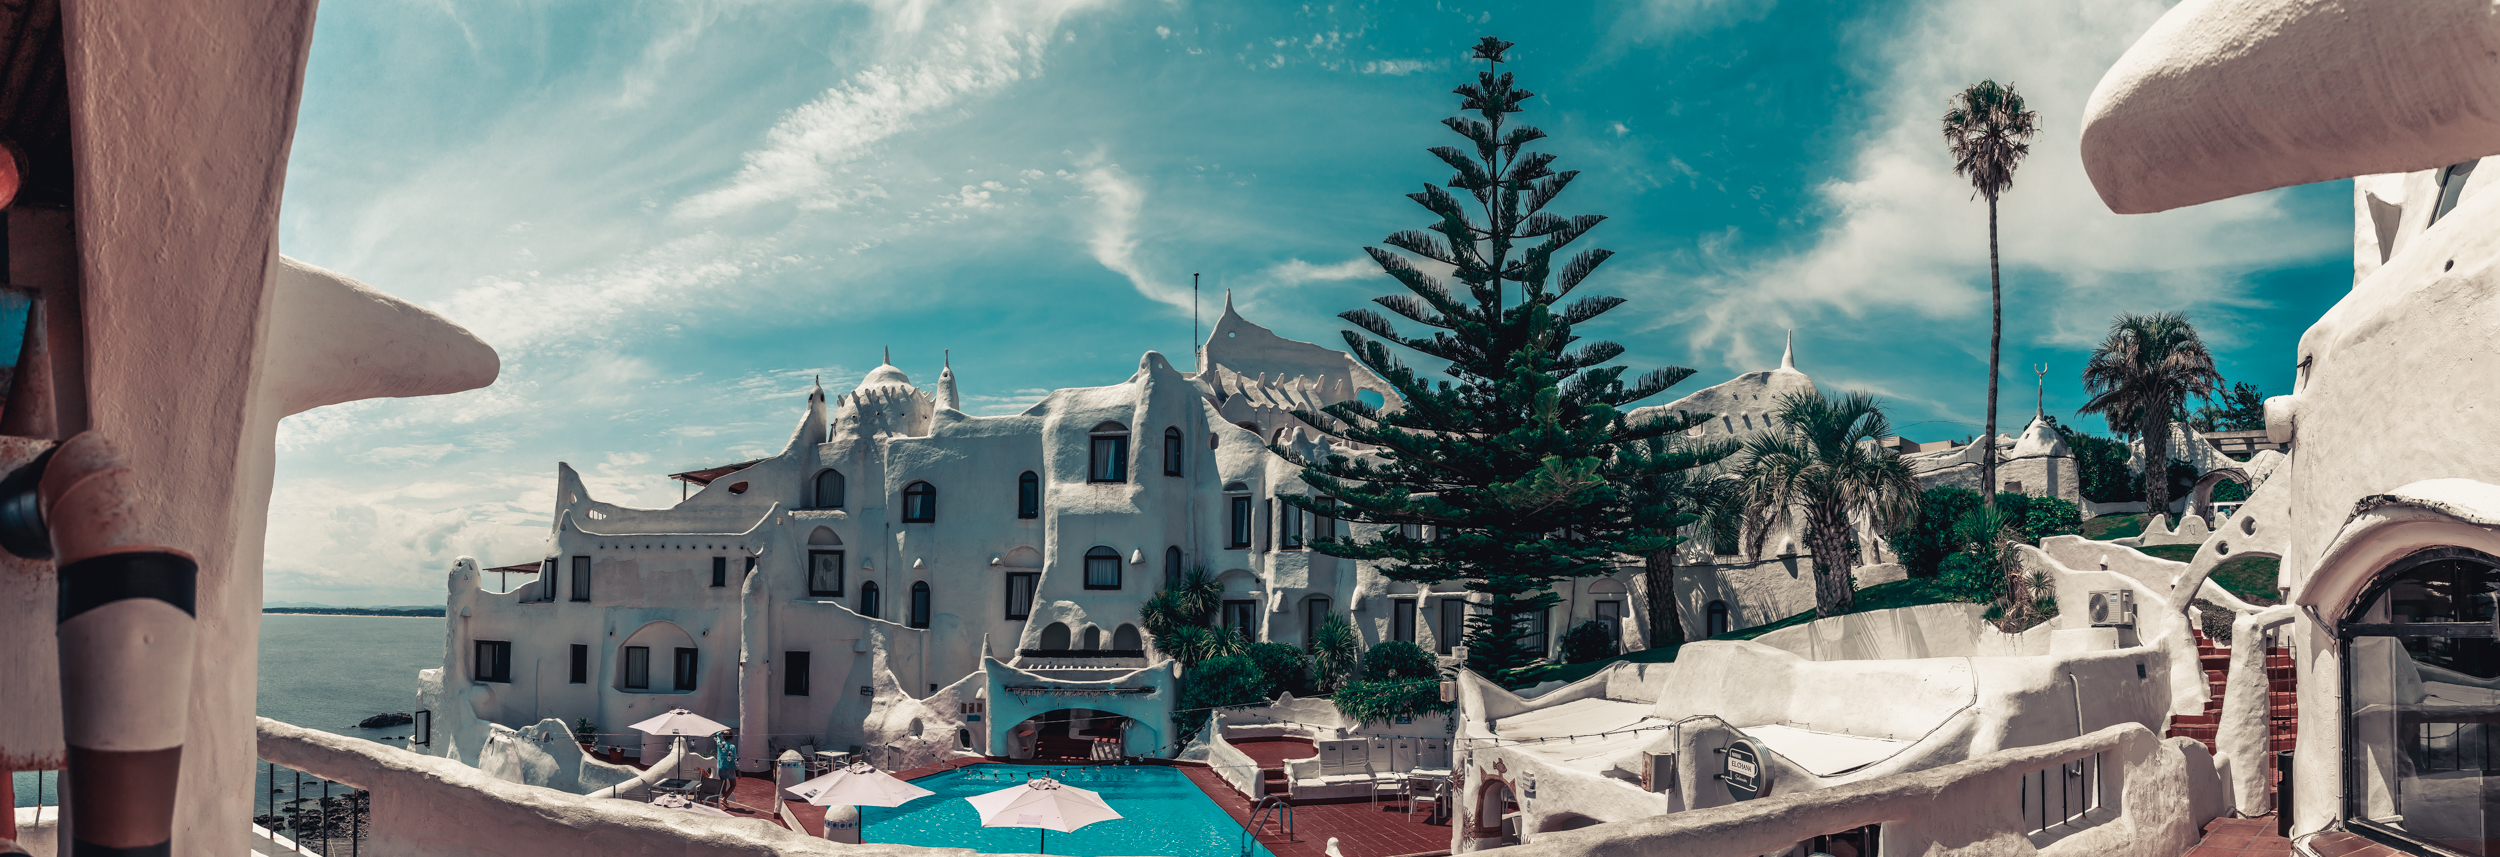 Squarespace-South America 2019-097-Pano.jpg